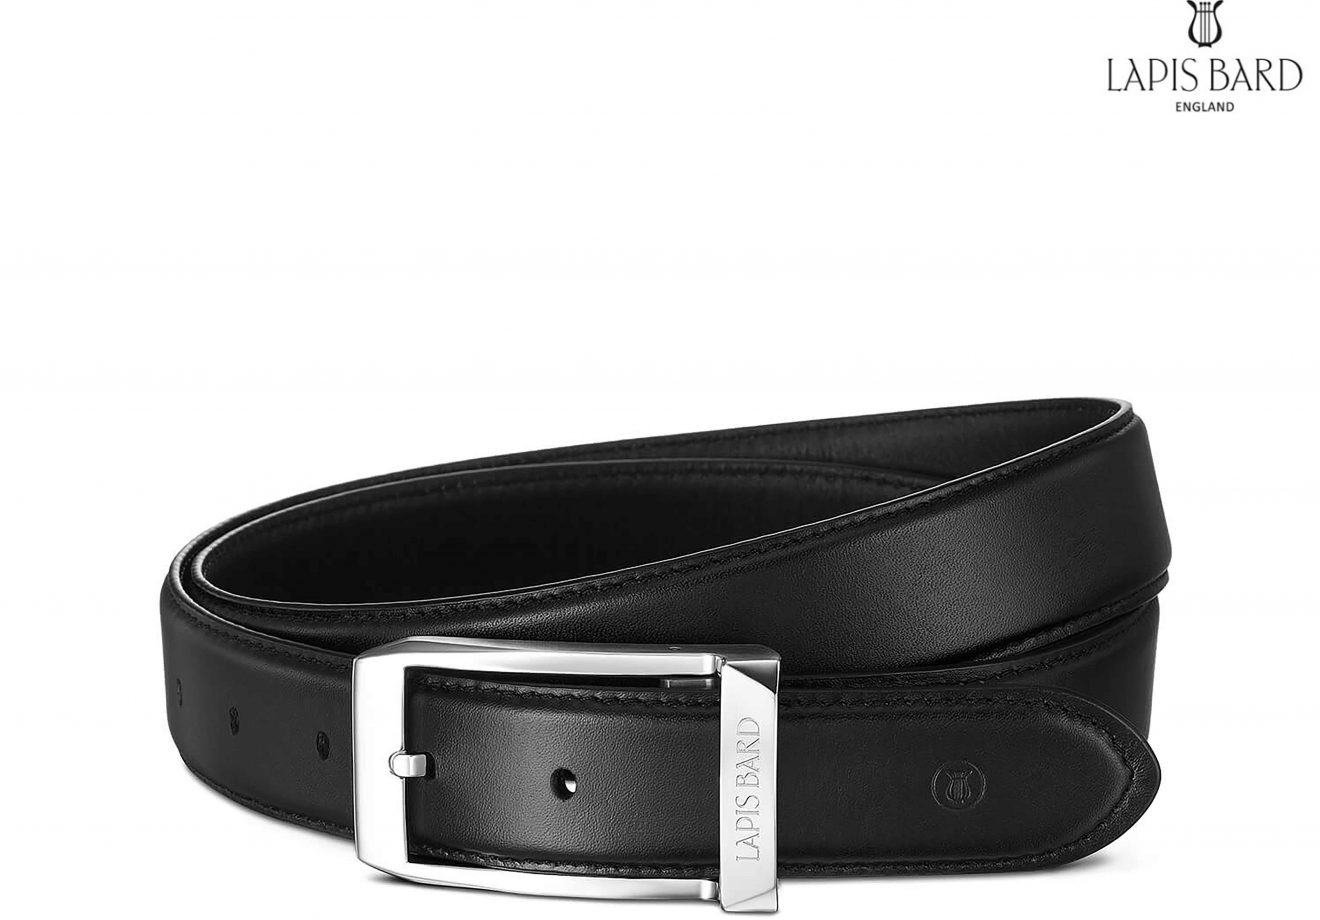 Amp up your Outfits with the Wellington and Knightsbridge Leather Belts from Lapis Bard